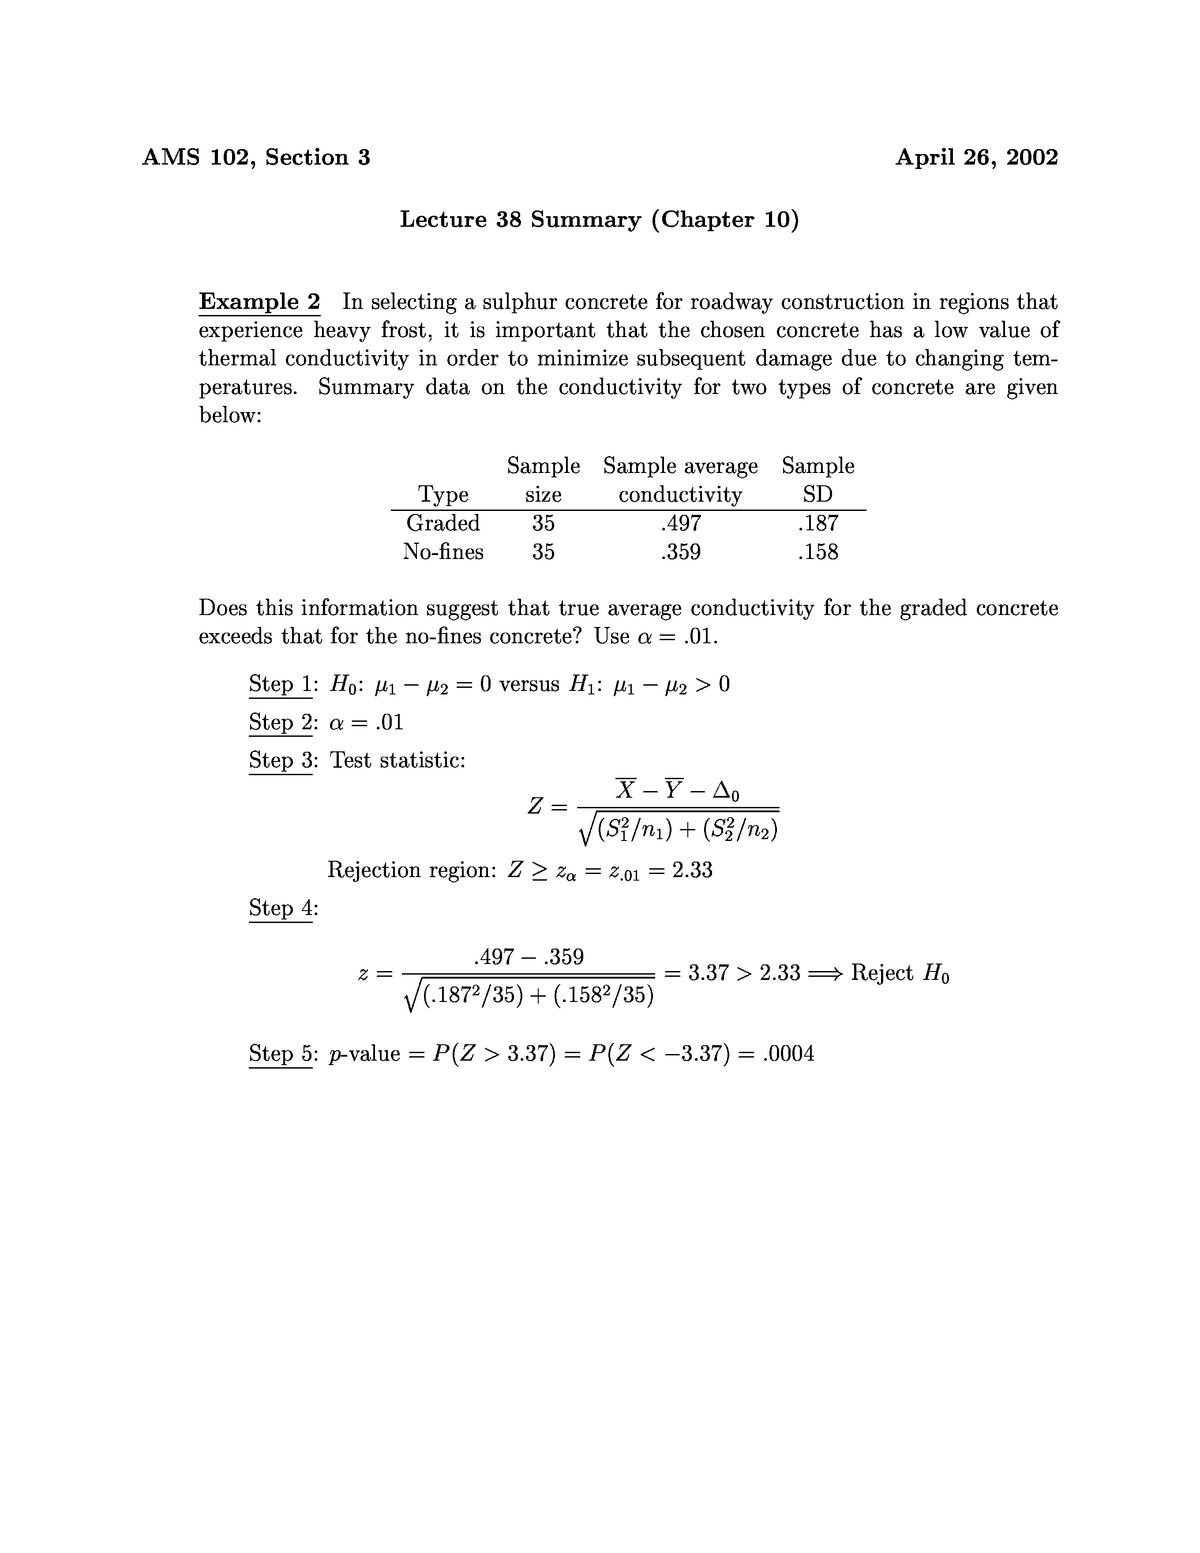 Lecture 38 - Comparing Two Treatments - Examples 1-2 - AMS-S